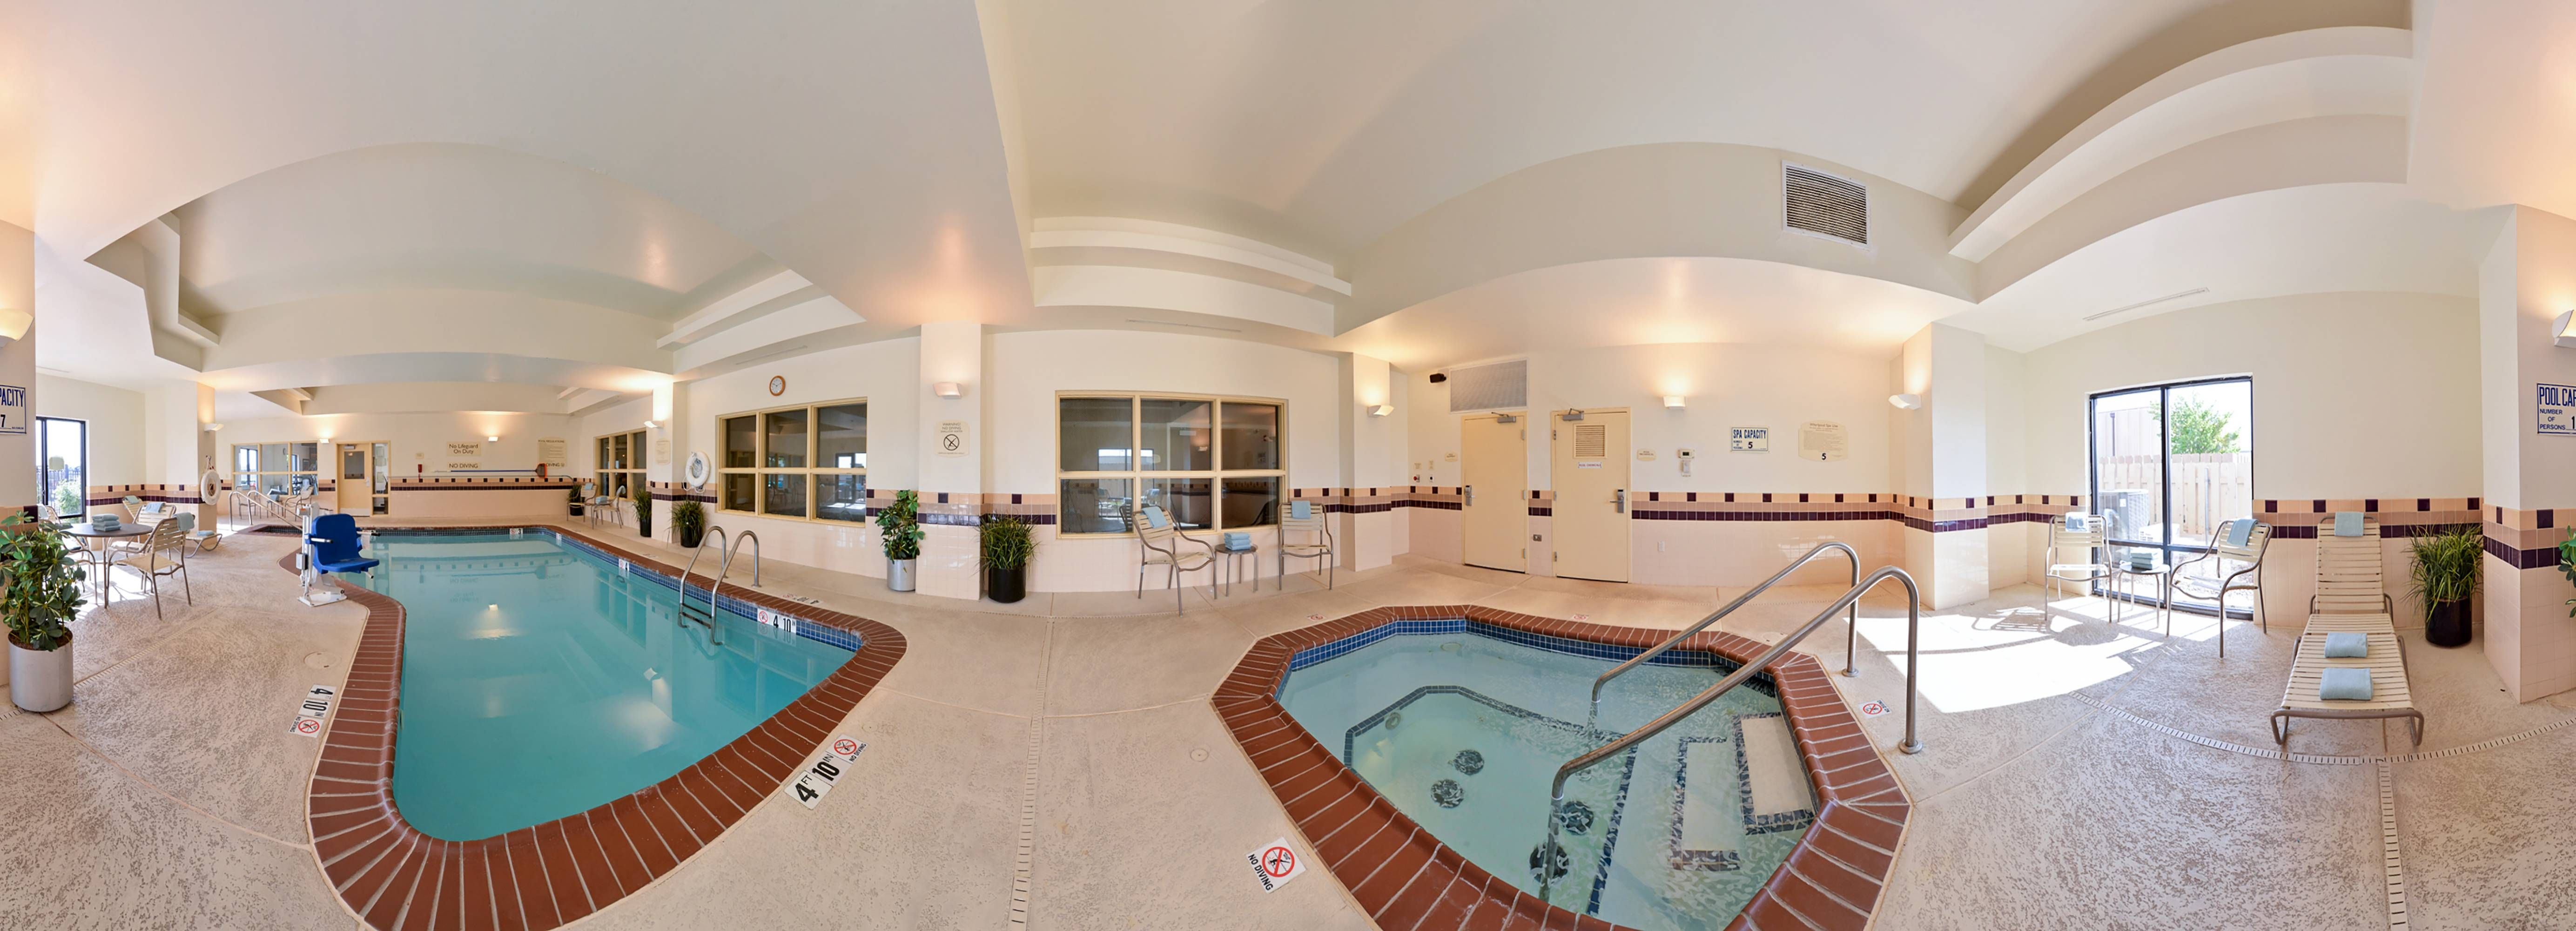 Springhill Suites Oklahoma City Airport Indoor Pool And Hot Tub Enjoy Guestbathroom Comfort Oklahoma City Airport Indoor Pool Springhill